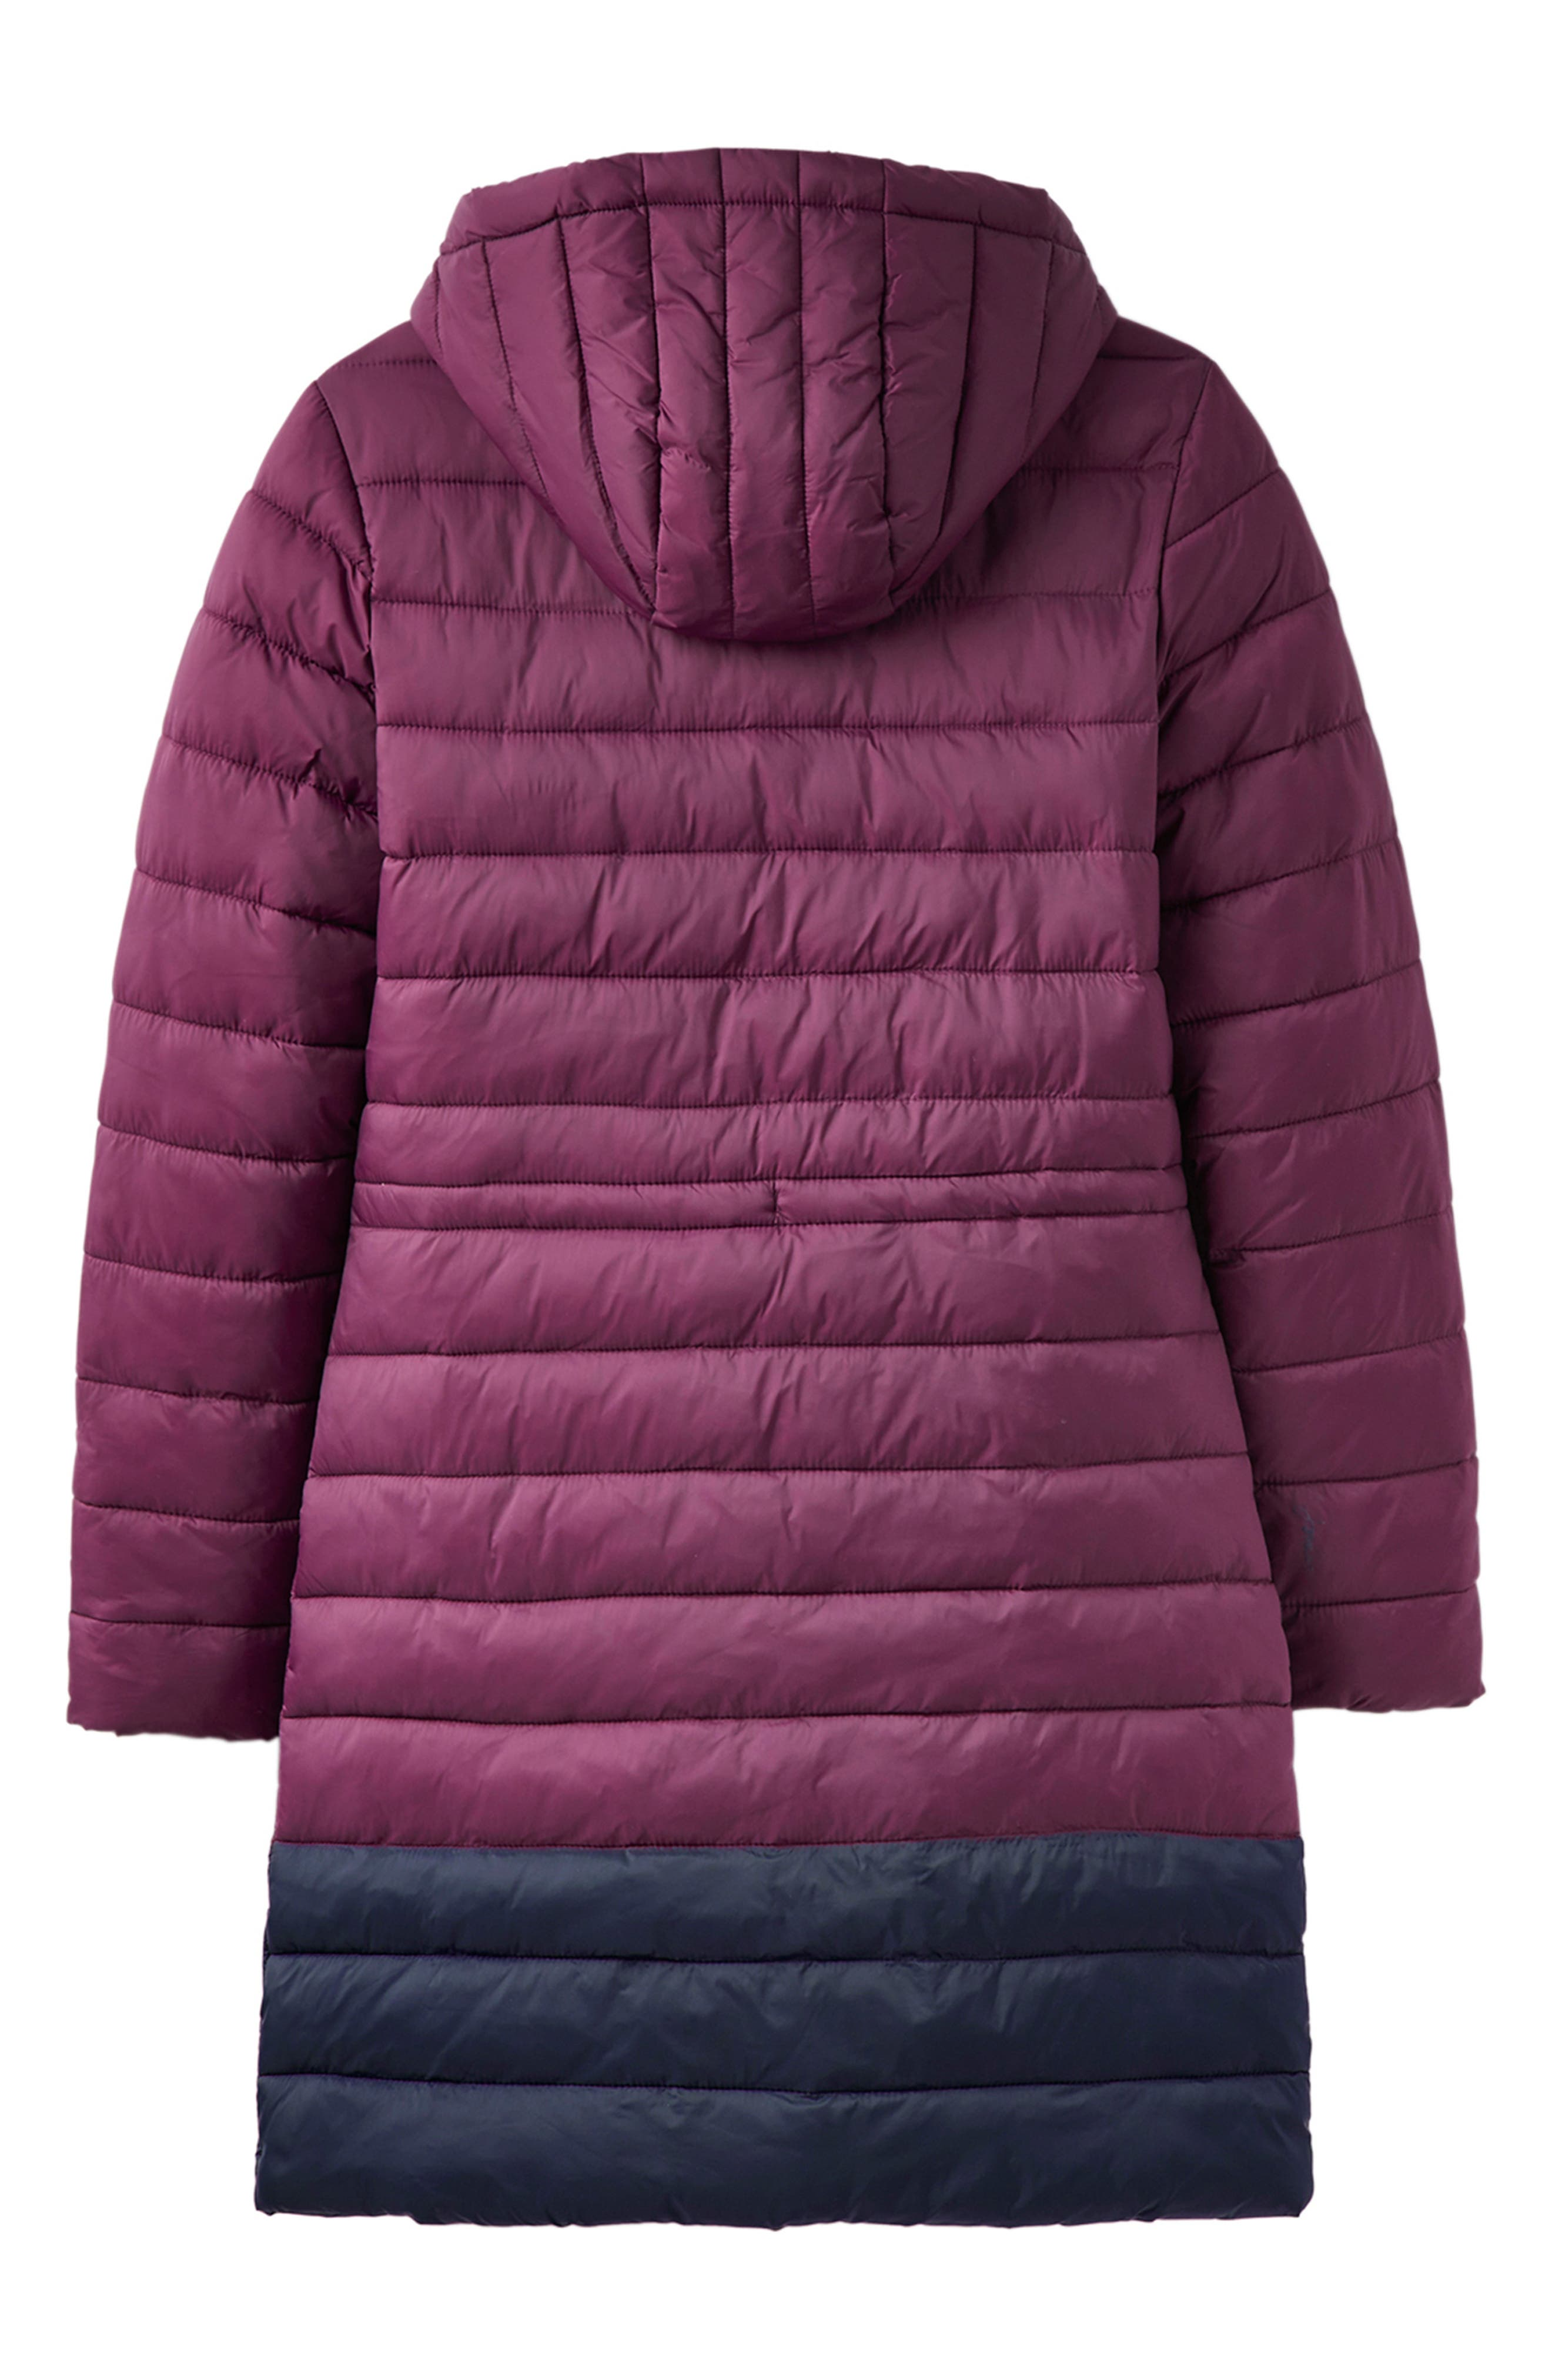 JOULES,                             Heathcote Two-Tone Puffer Jacket,                             Alternate thumbnail 7, color,                             BURGUNDY